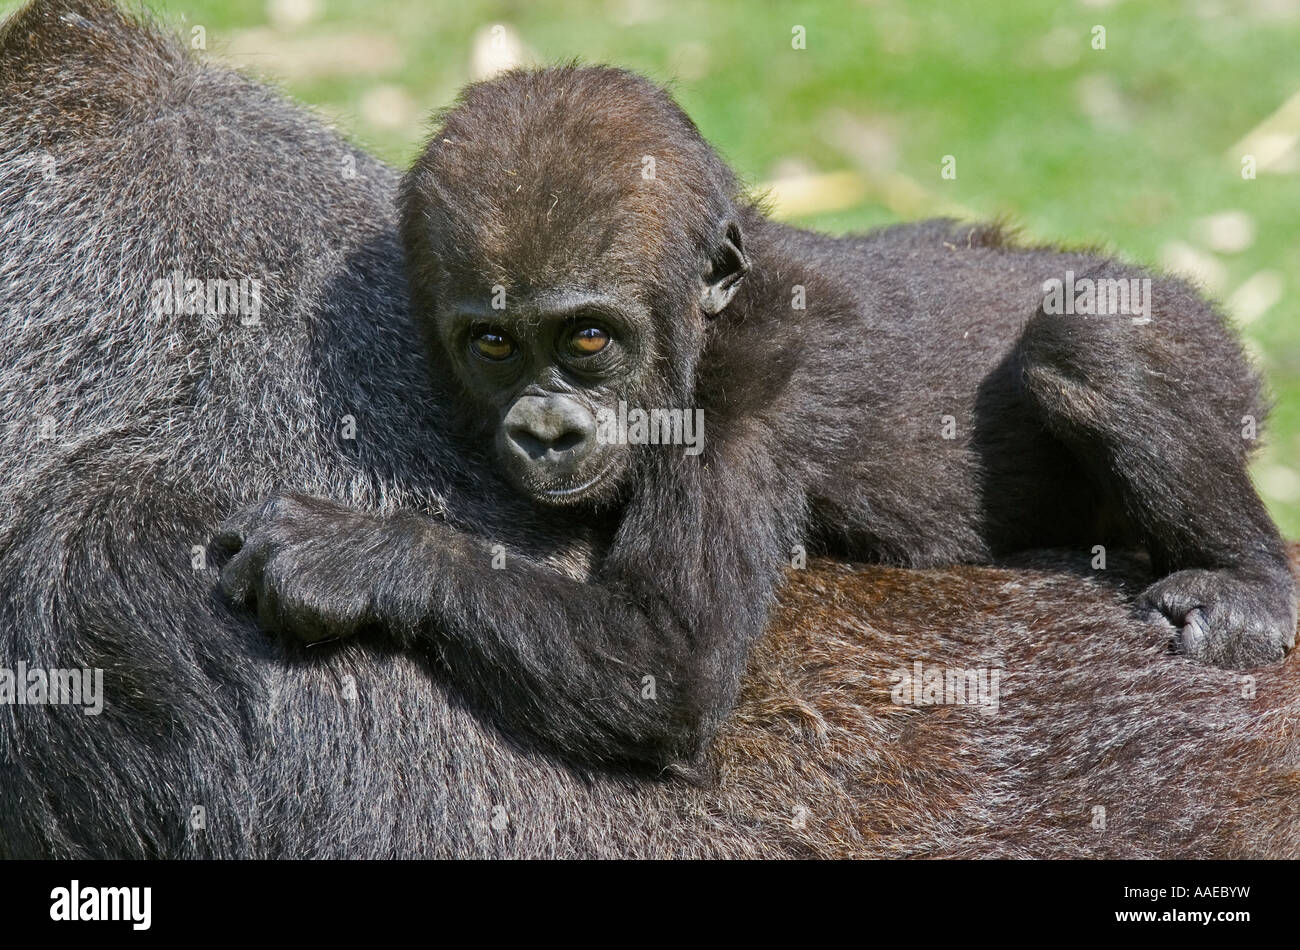 young-gorilla-clinging-to-parents-back-c